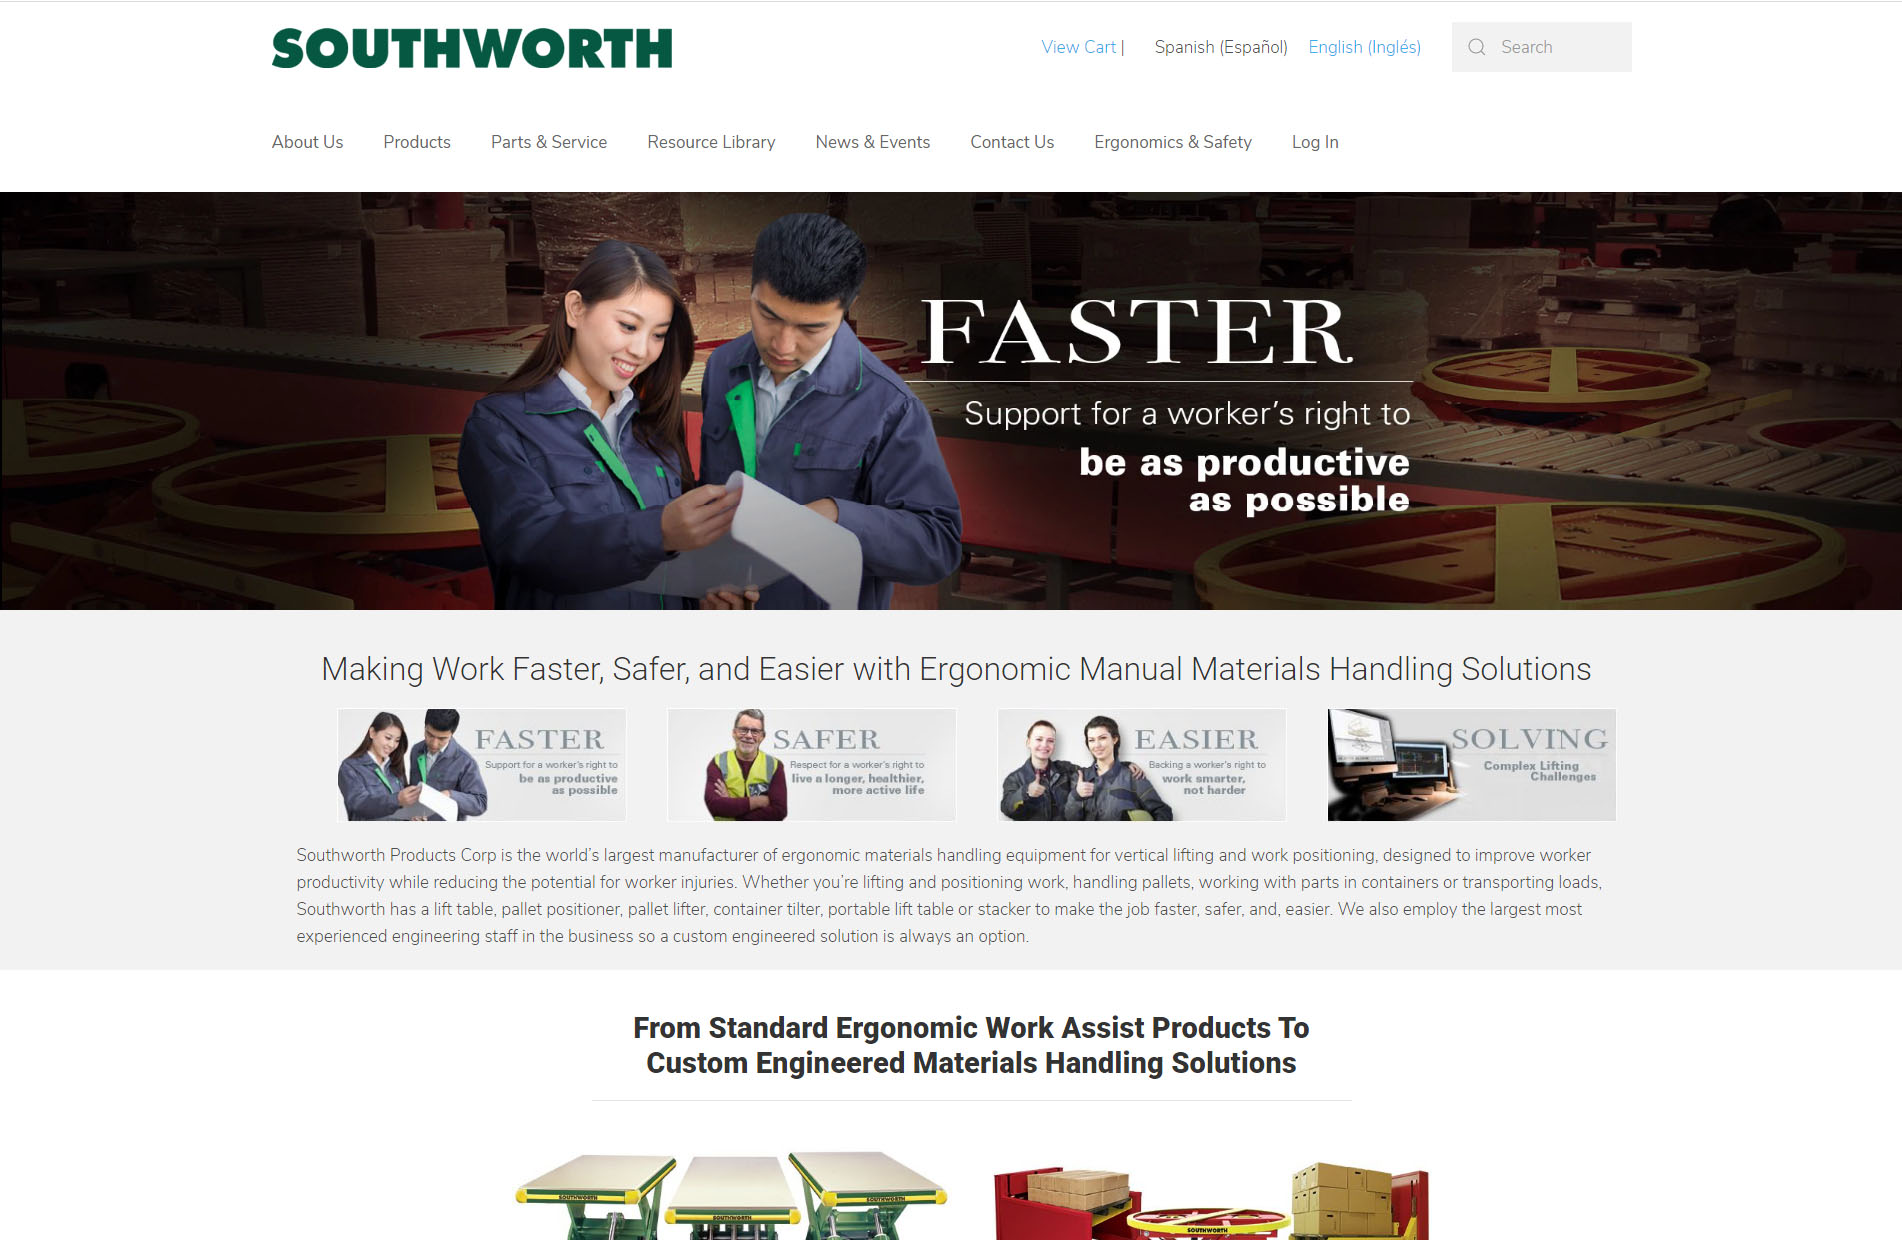 Southworth Products